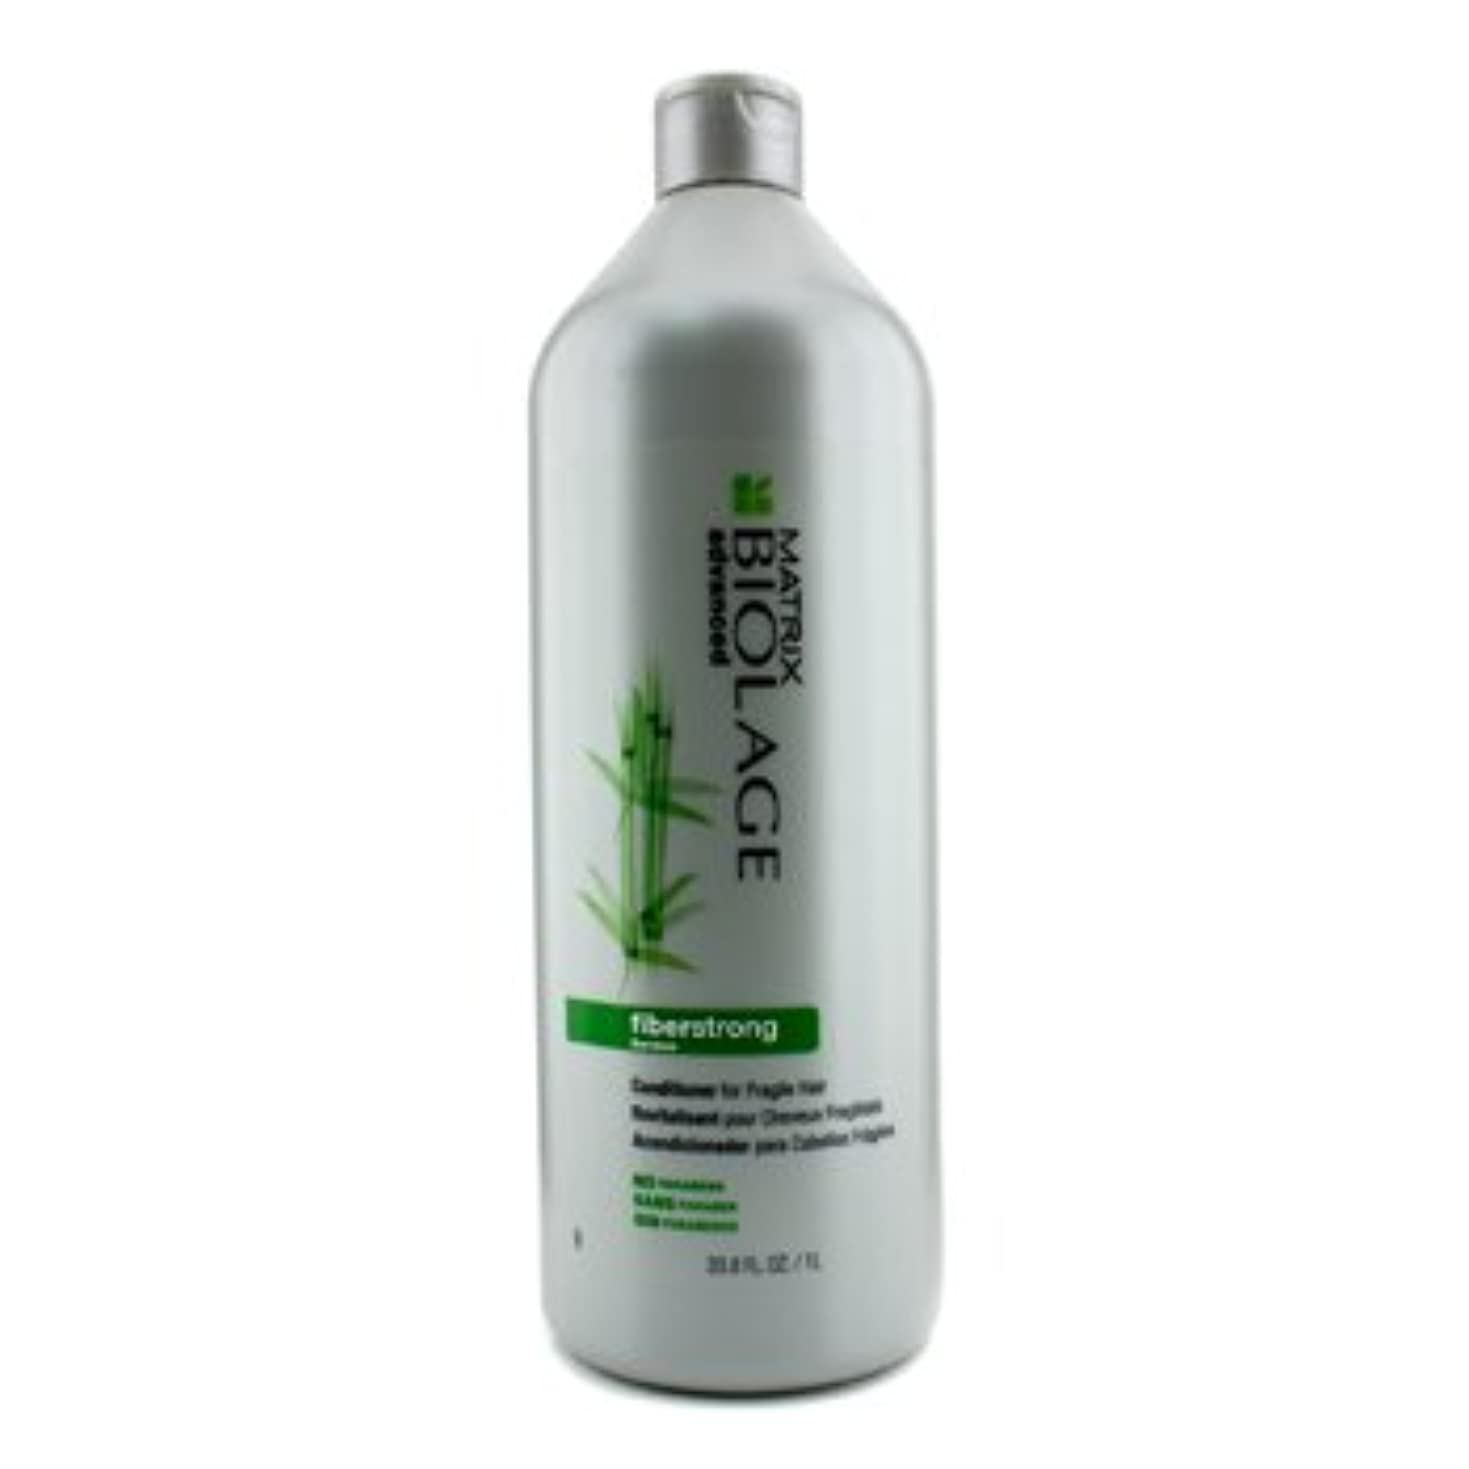 床を掃除する注釈テレビを見る[Matrix] Biolage Advanced FiberStrong Conditioner (For Fragile Hair) 1000ml/33.8oz